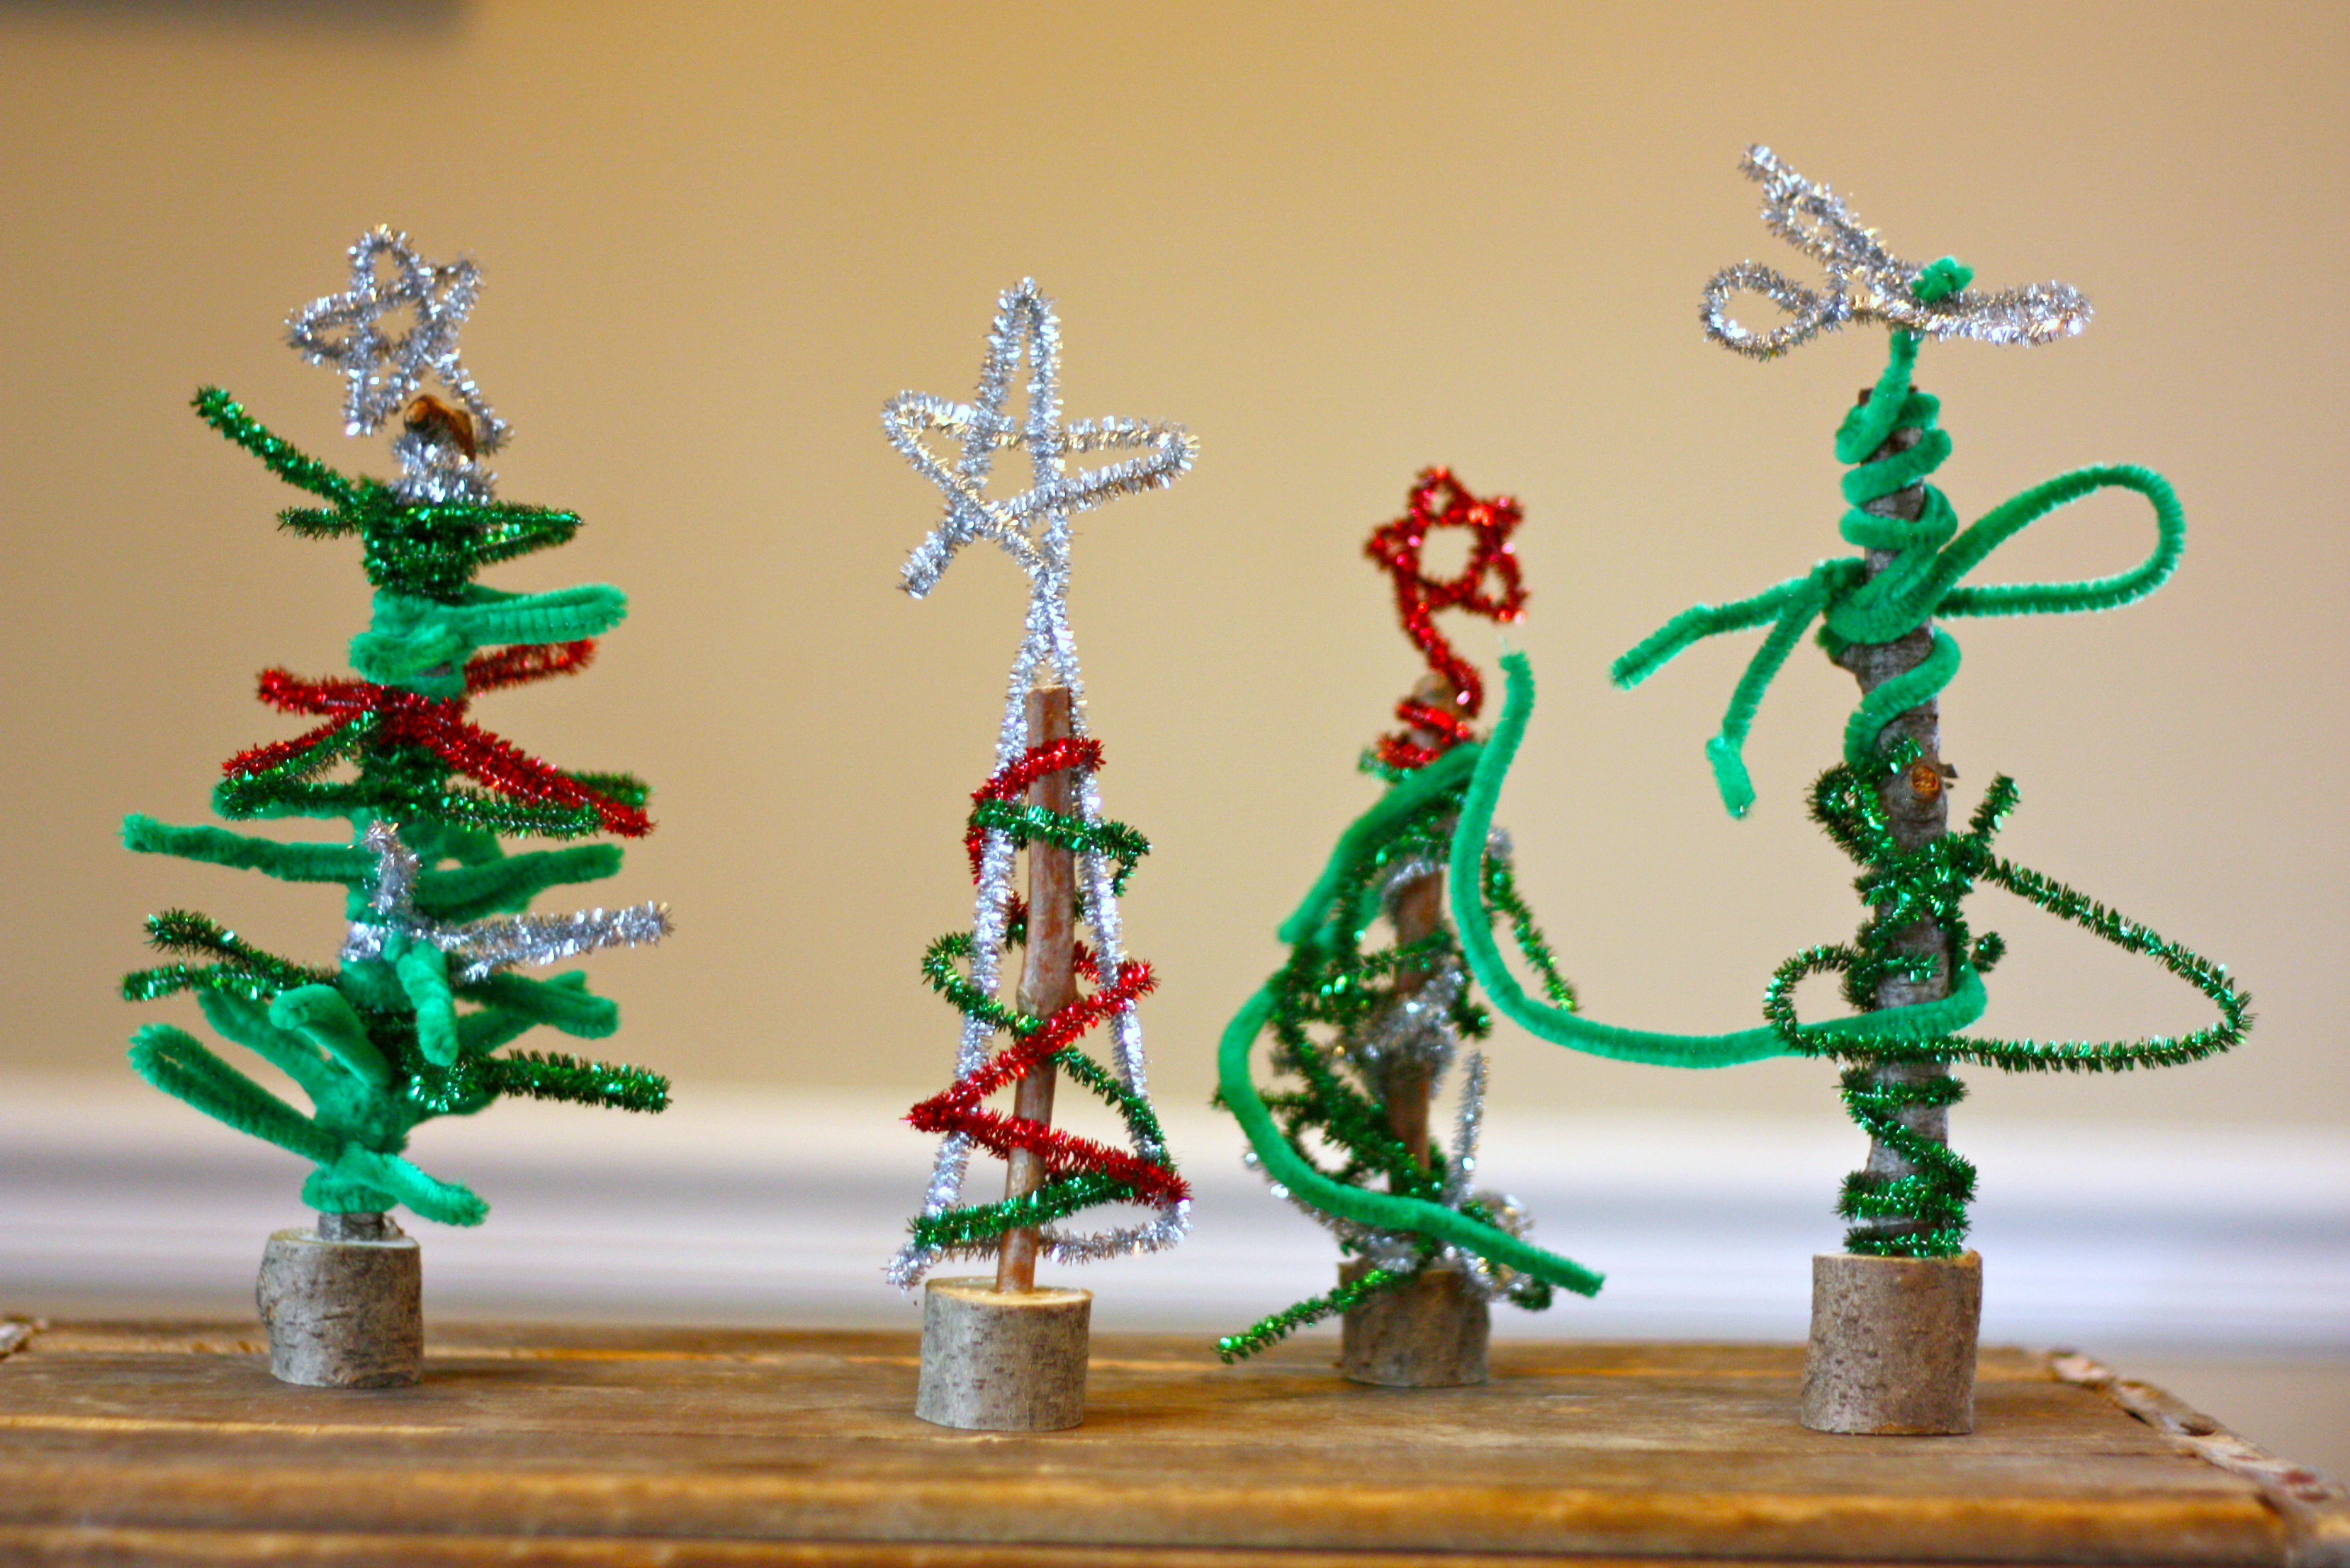 Pipe Cleaner Christmas Trees.Pipe Cleaner Christmas Trees Buzzmills